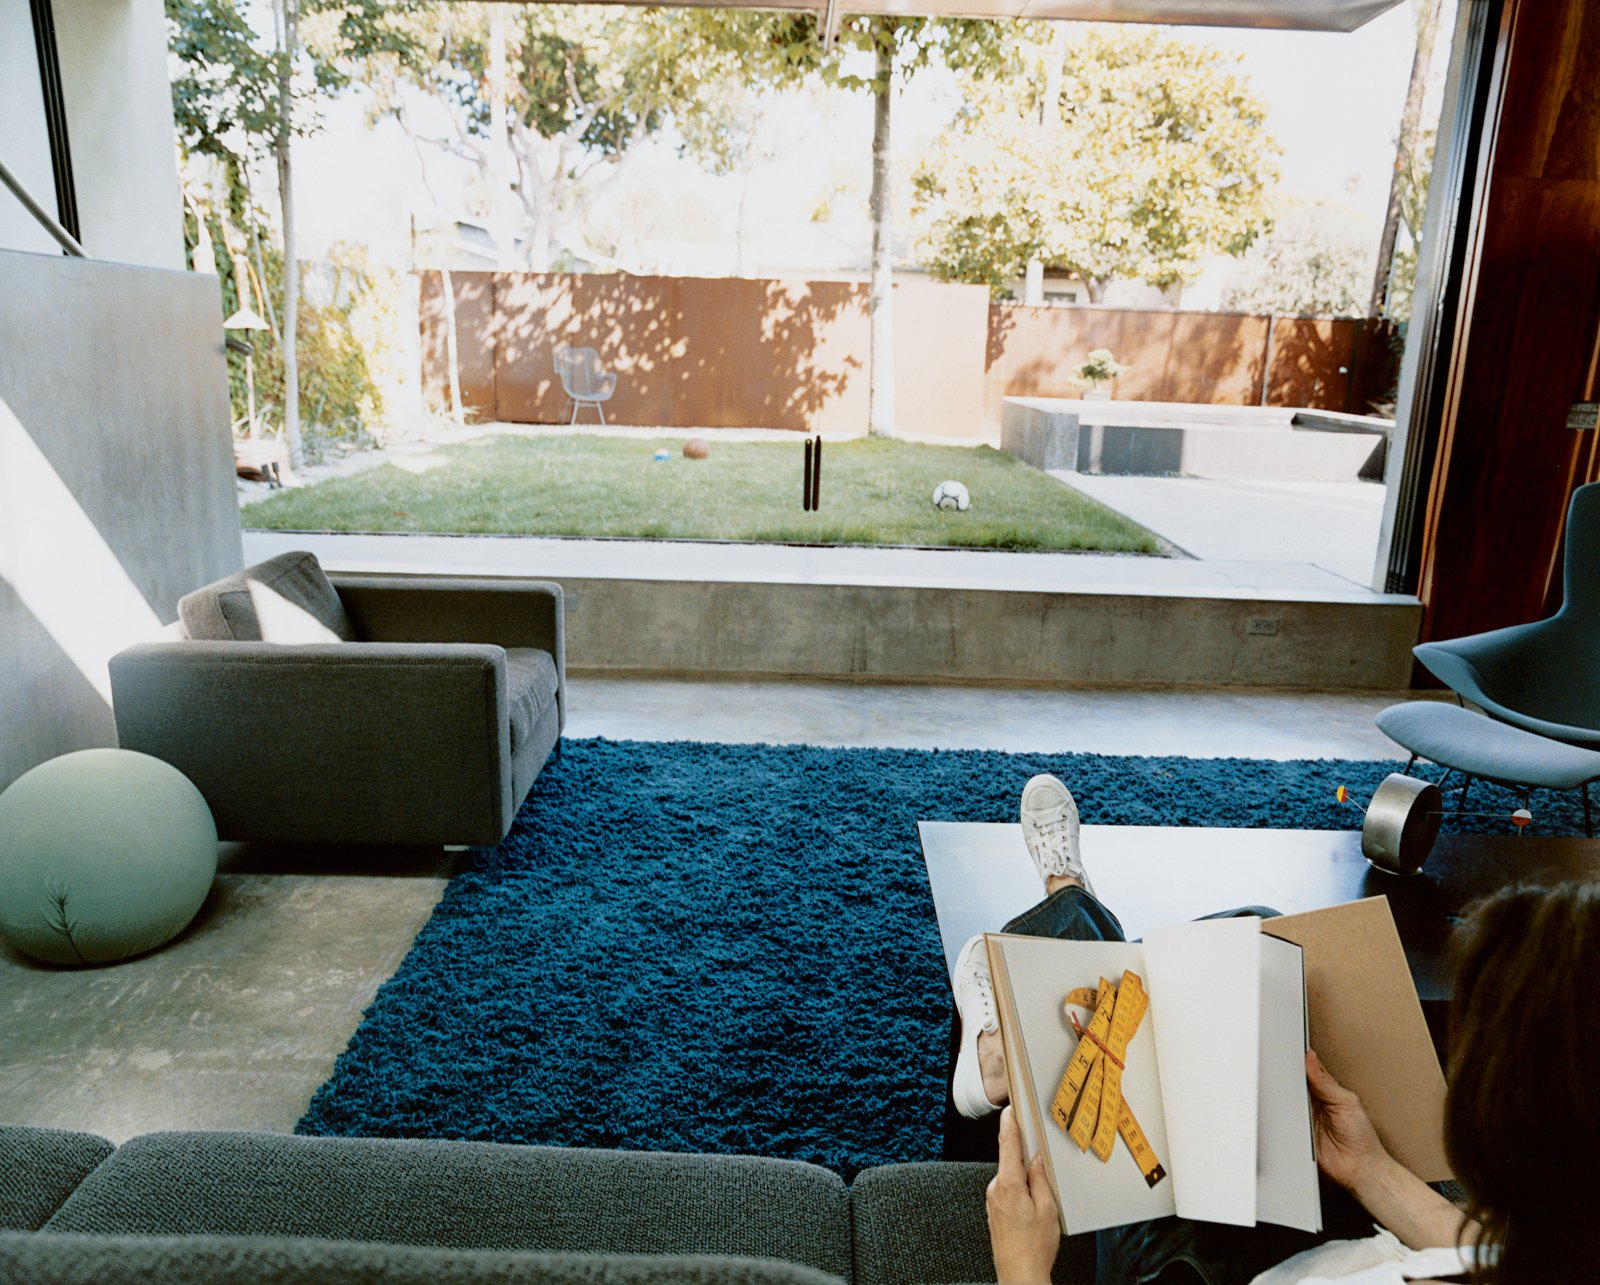 The living room flows effortlessly out to the courtyard. This unity is underscored by the living room's blue shag rug from the Shag Rug Company. Solar Inspiration - Photo 1 of 8